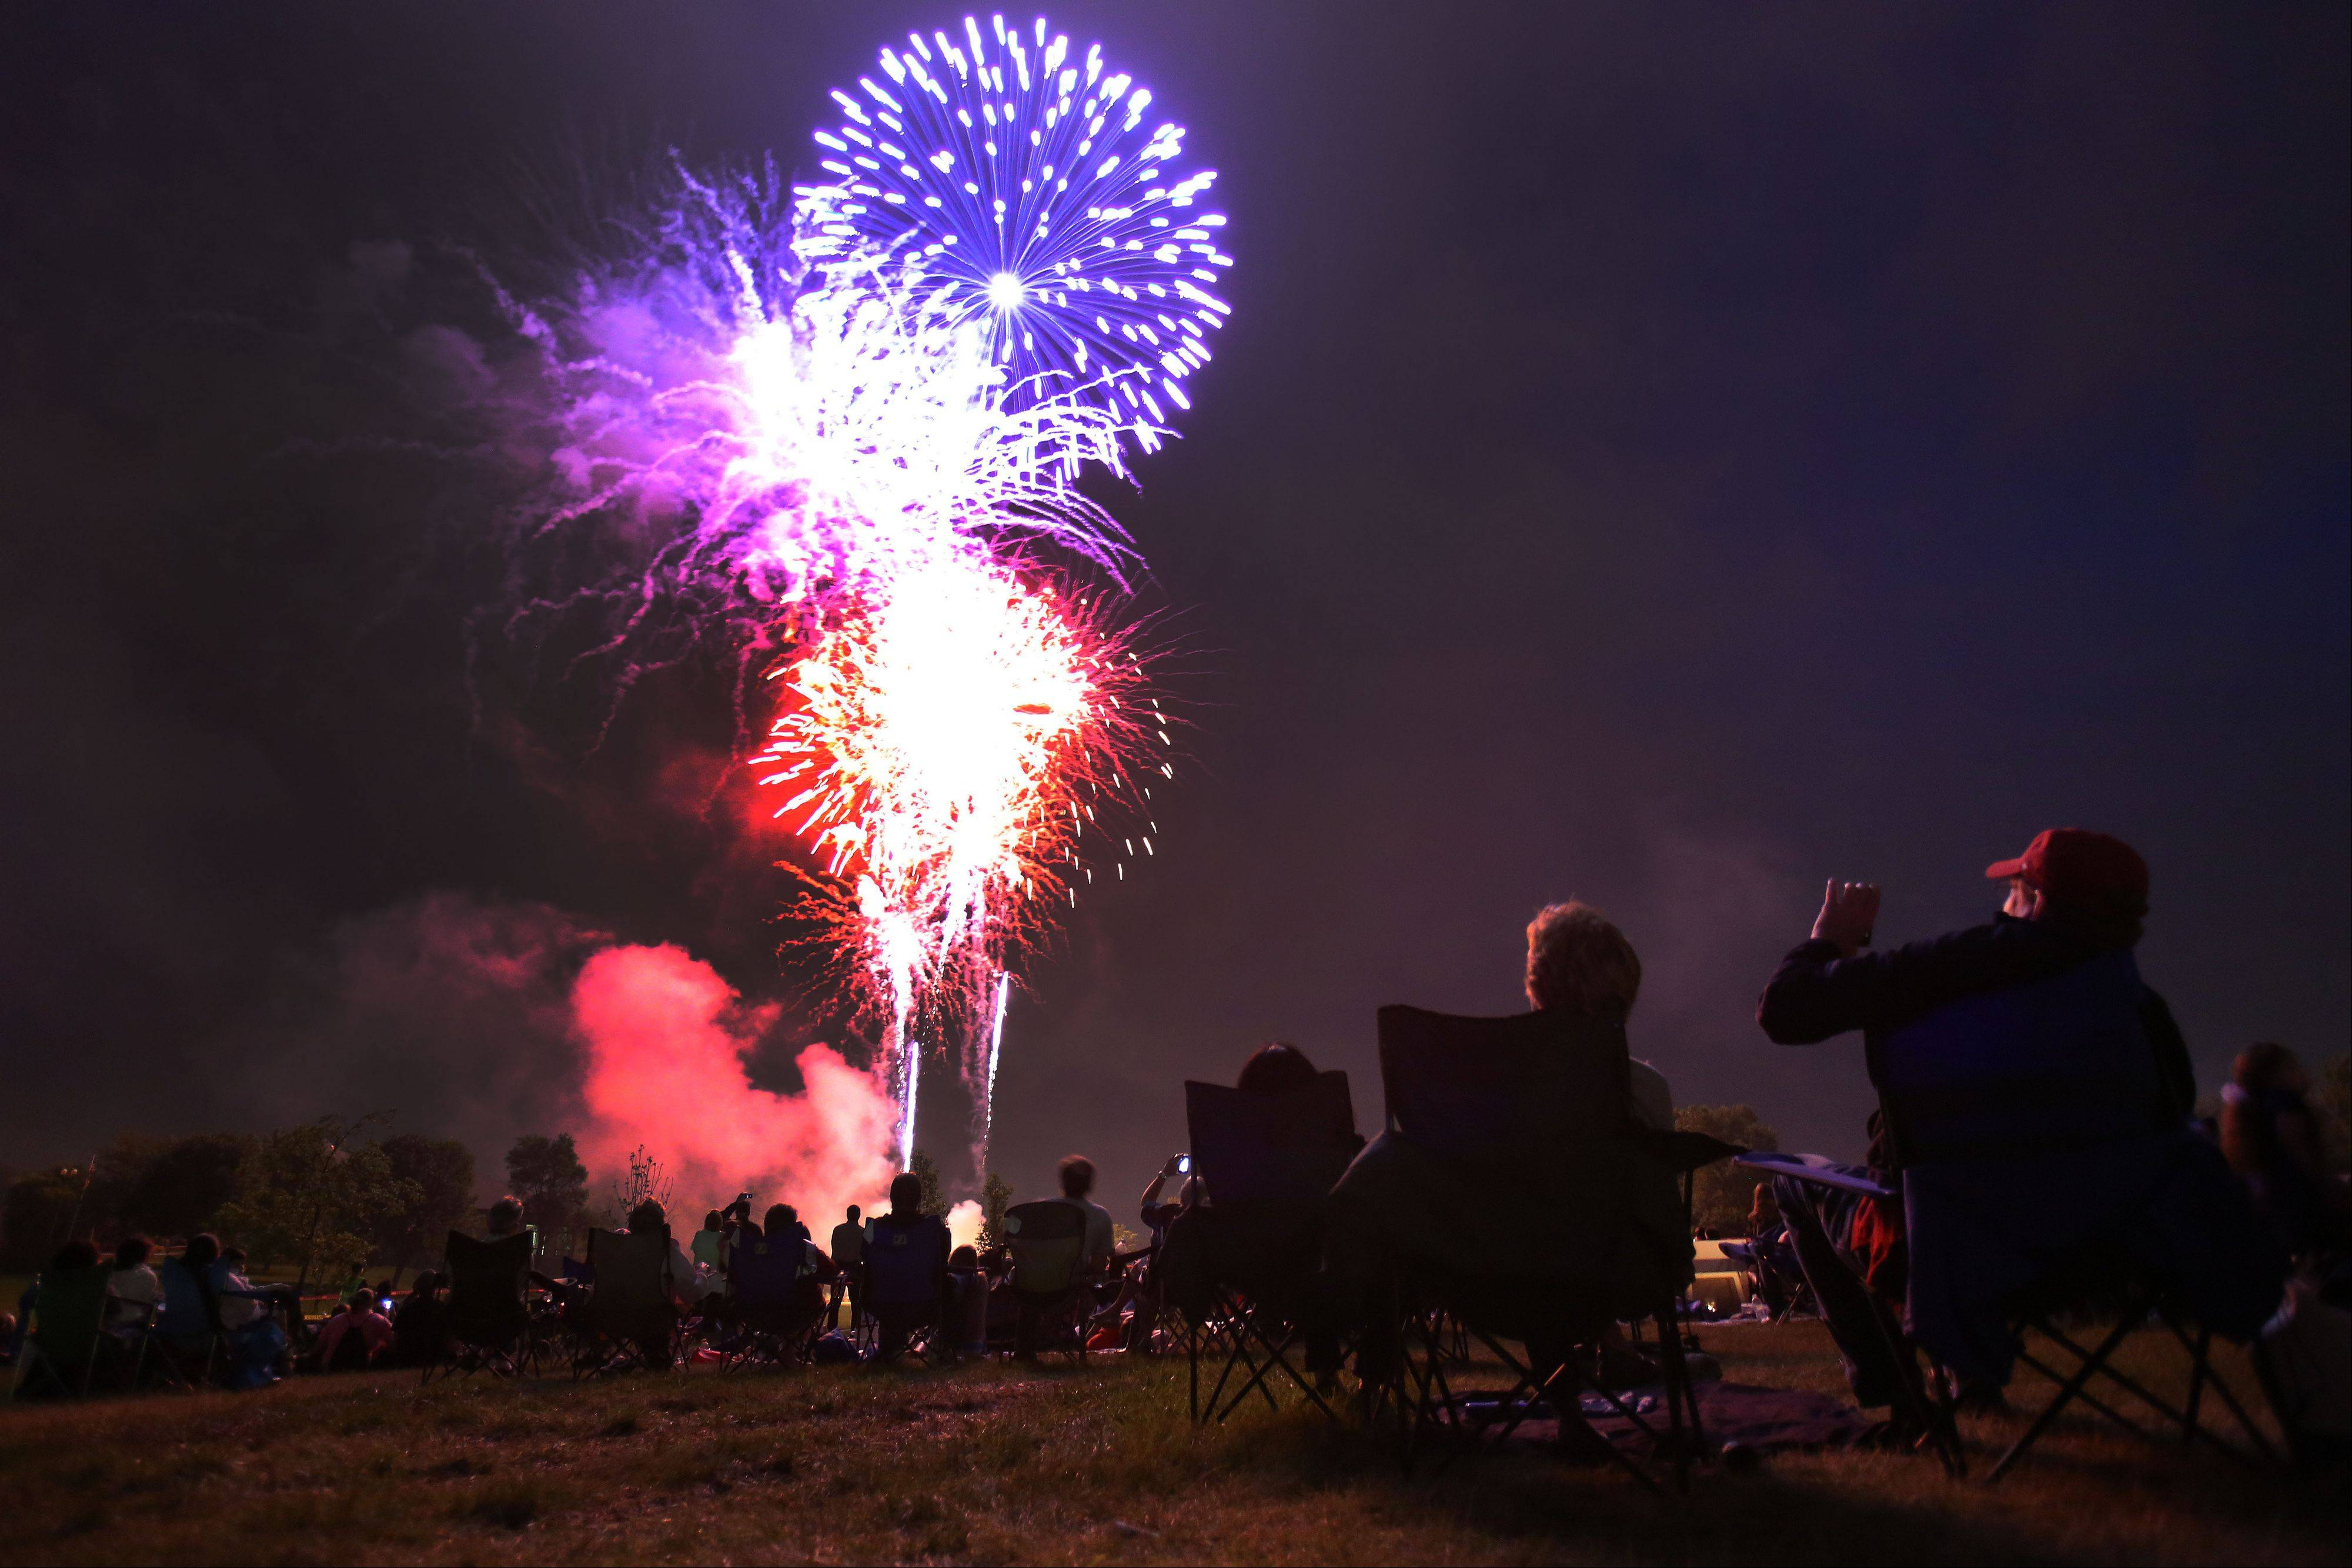 People enjoy the fireworks show Wednesday night at Cook Park in Wauconda.